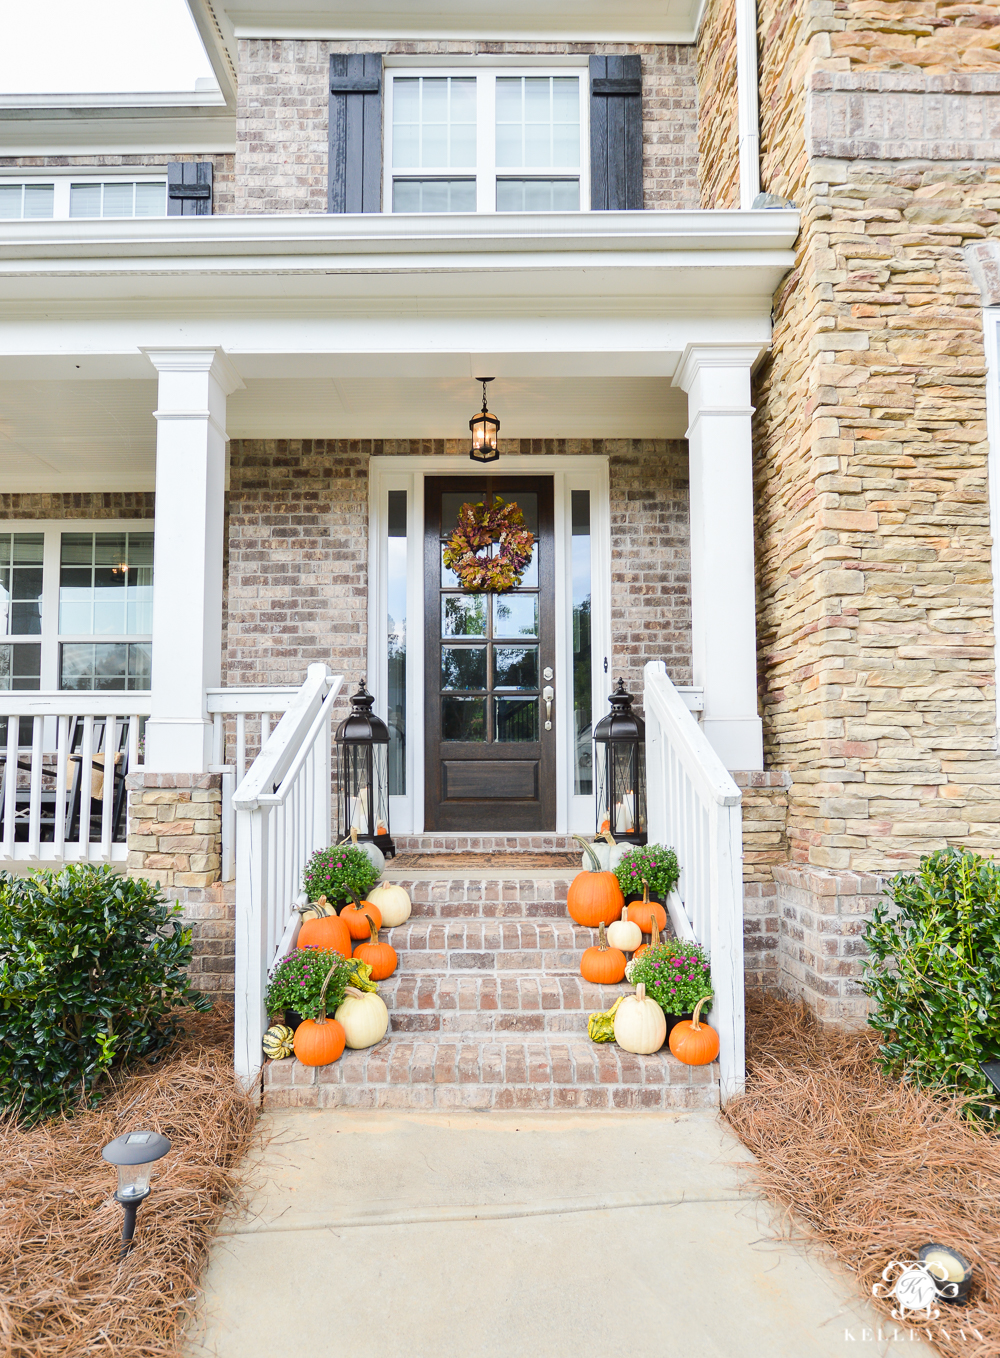 2017 Fall Home Tour with Yellow and Orange Leaves- pumpkins traditional craftsman style home